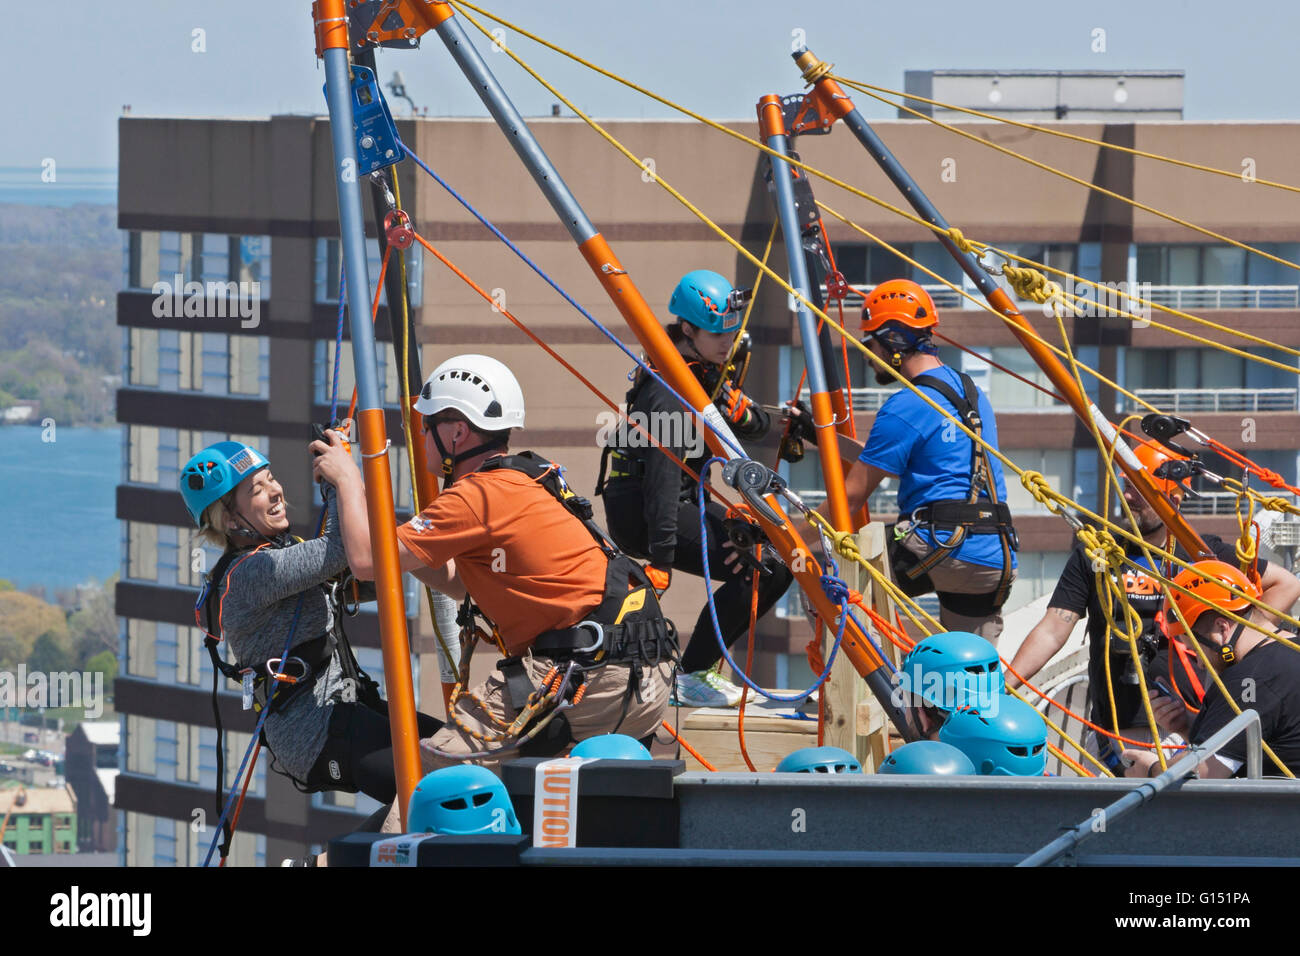 Detroit, Michigan - People rappel down a 25-story building as a fundraiser to benefit charities in Detroit and Nepal. - Stock Image